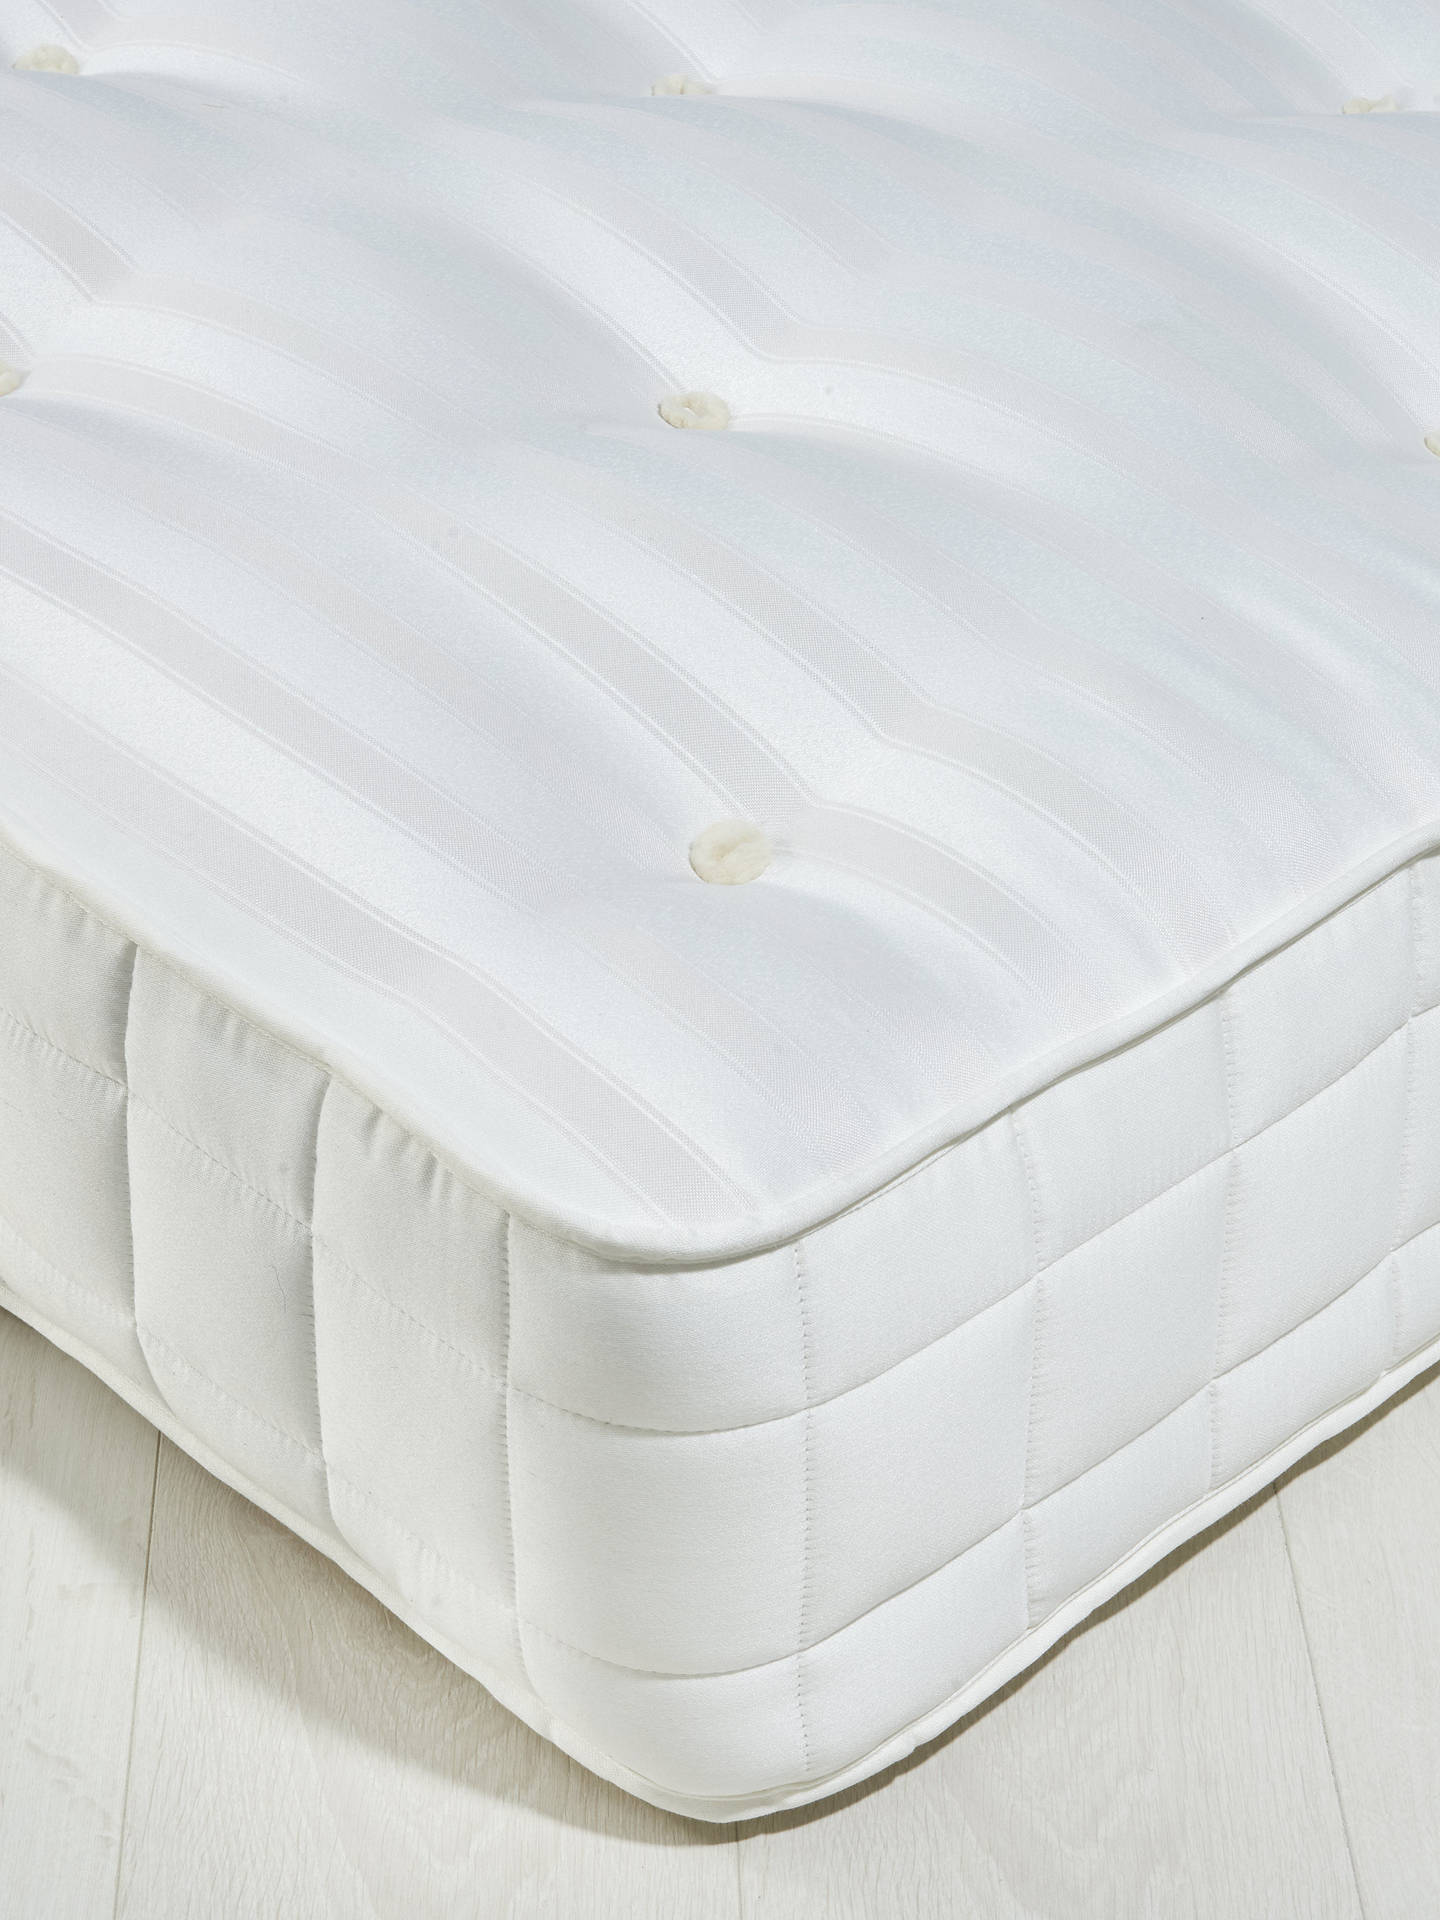 separation shoes 55da4 407ad John Lewis & Partners Classic Collection Comfort Support 1400 Pocket Spring  Mattress, Medium Tension, King Size